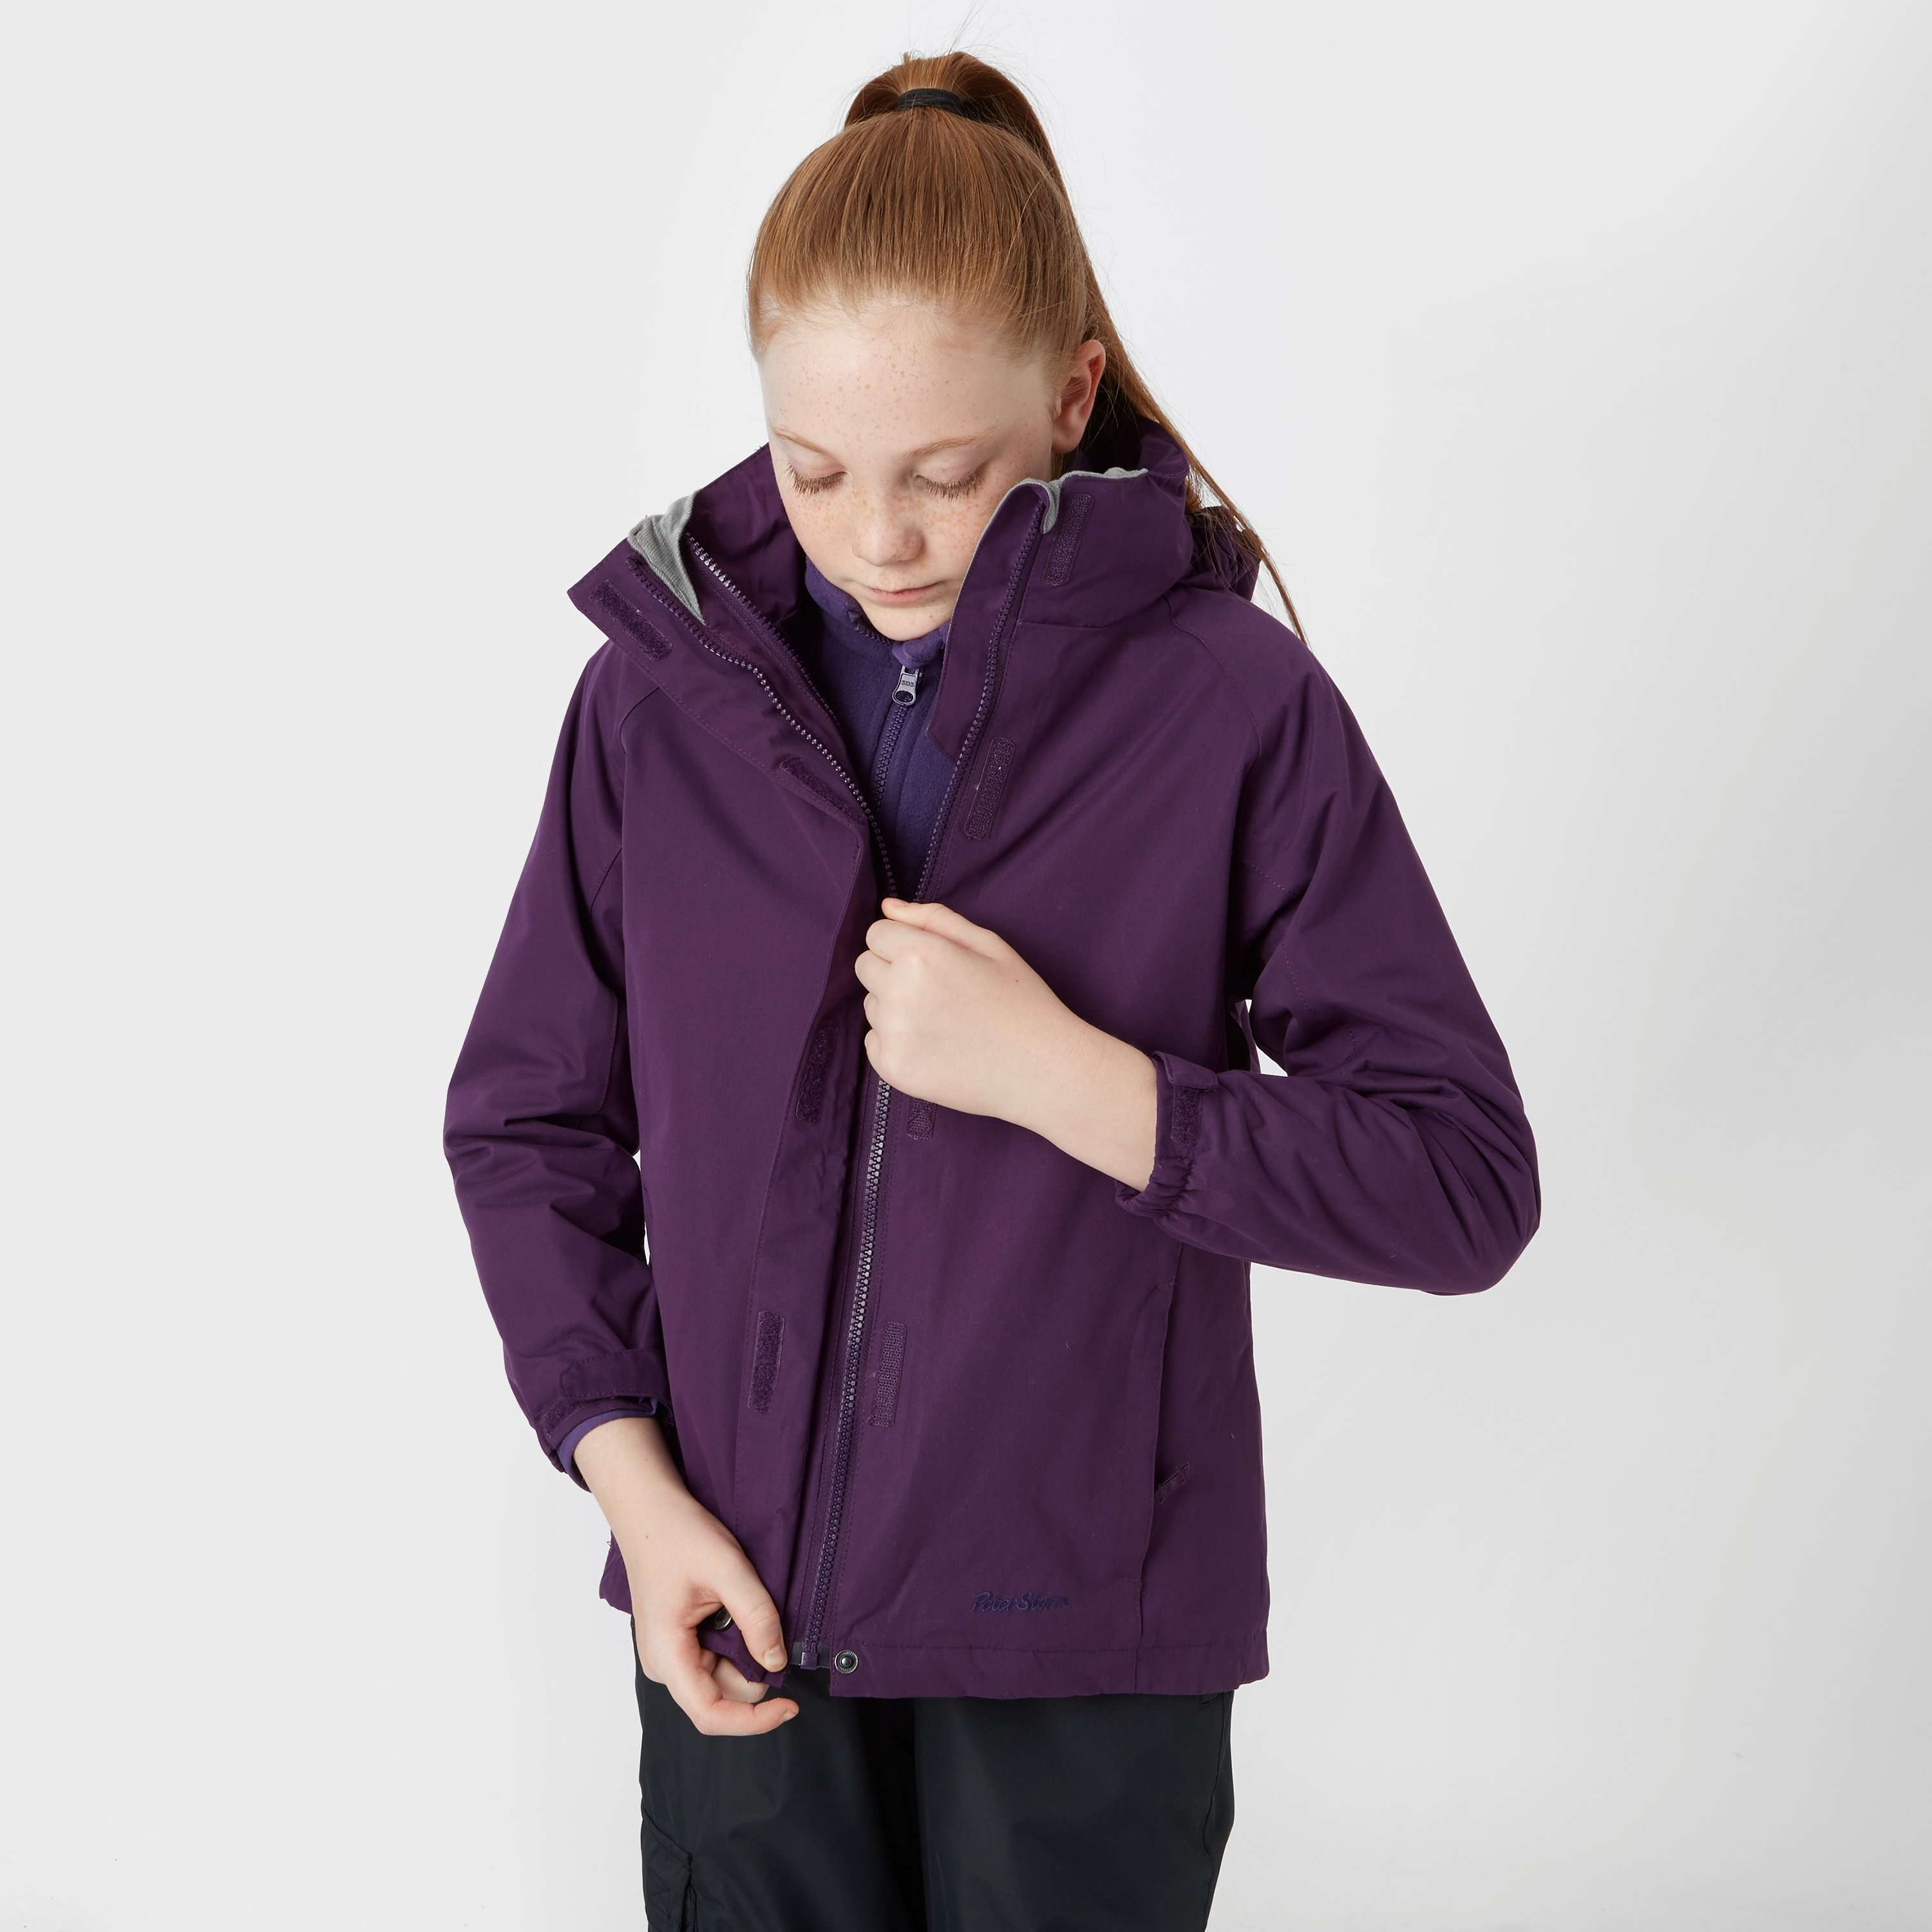 PETER STORM Girl's Beat The Storm 3 in 1 Jacket